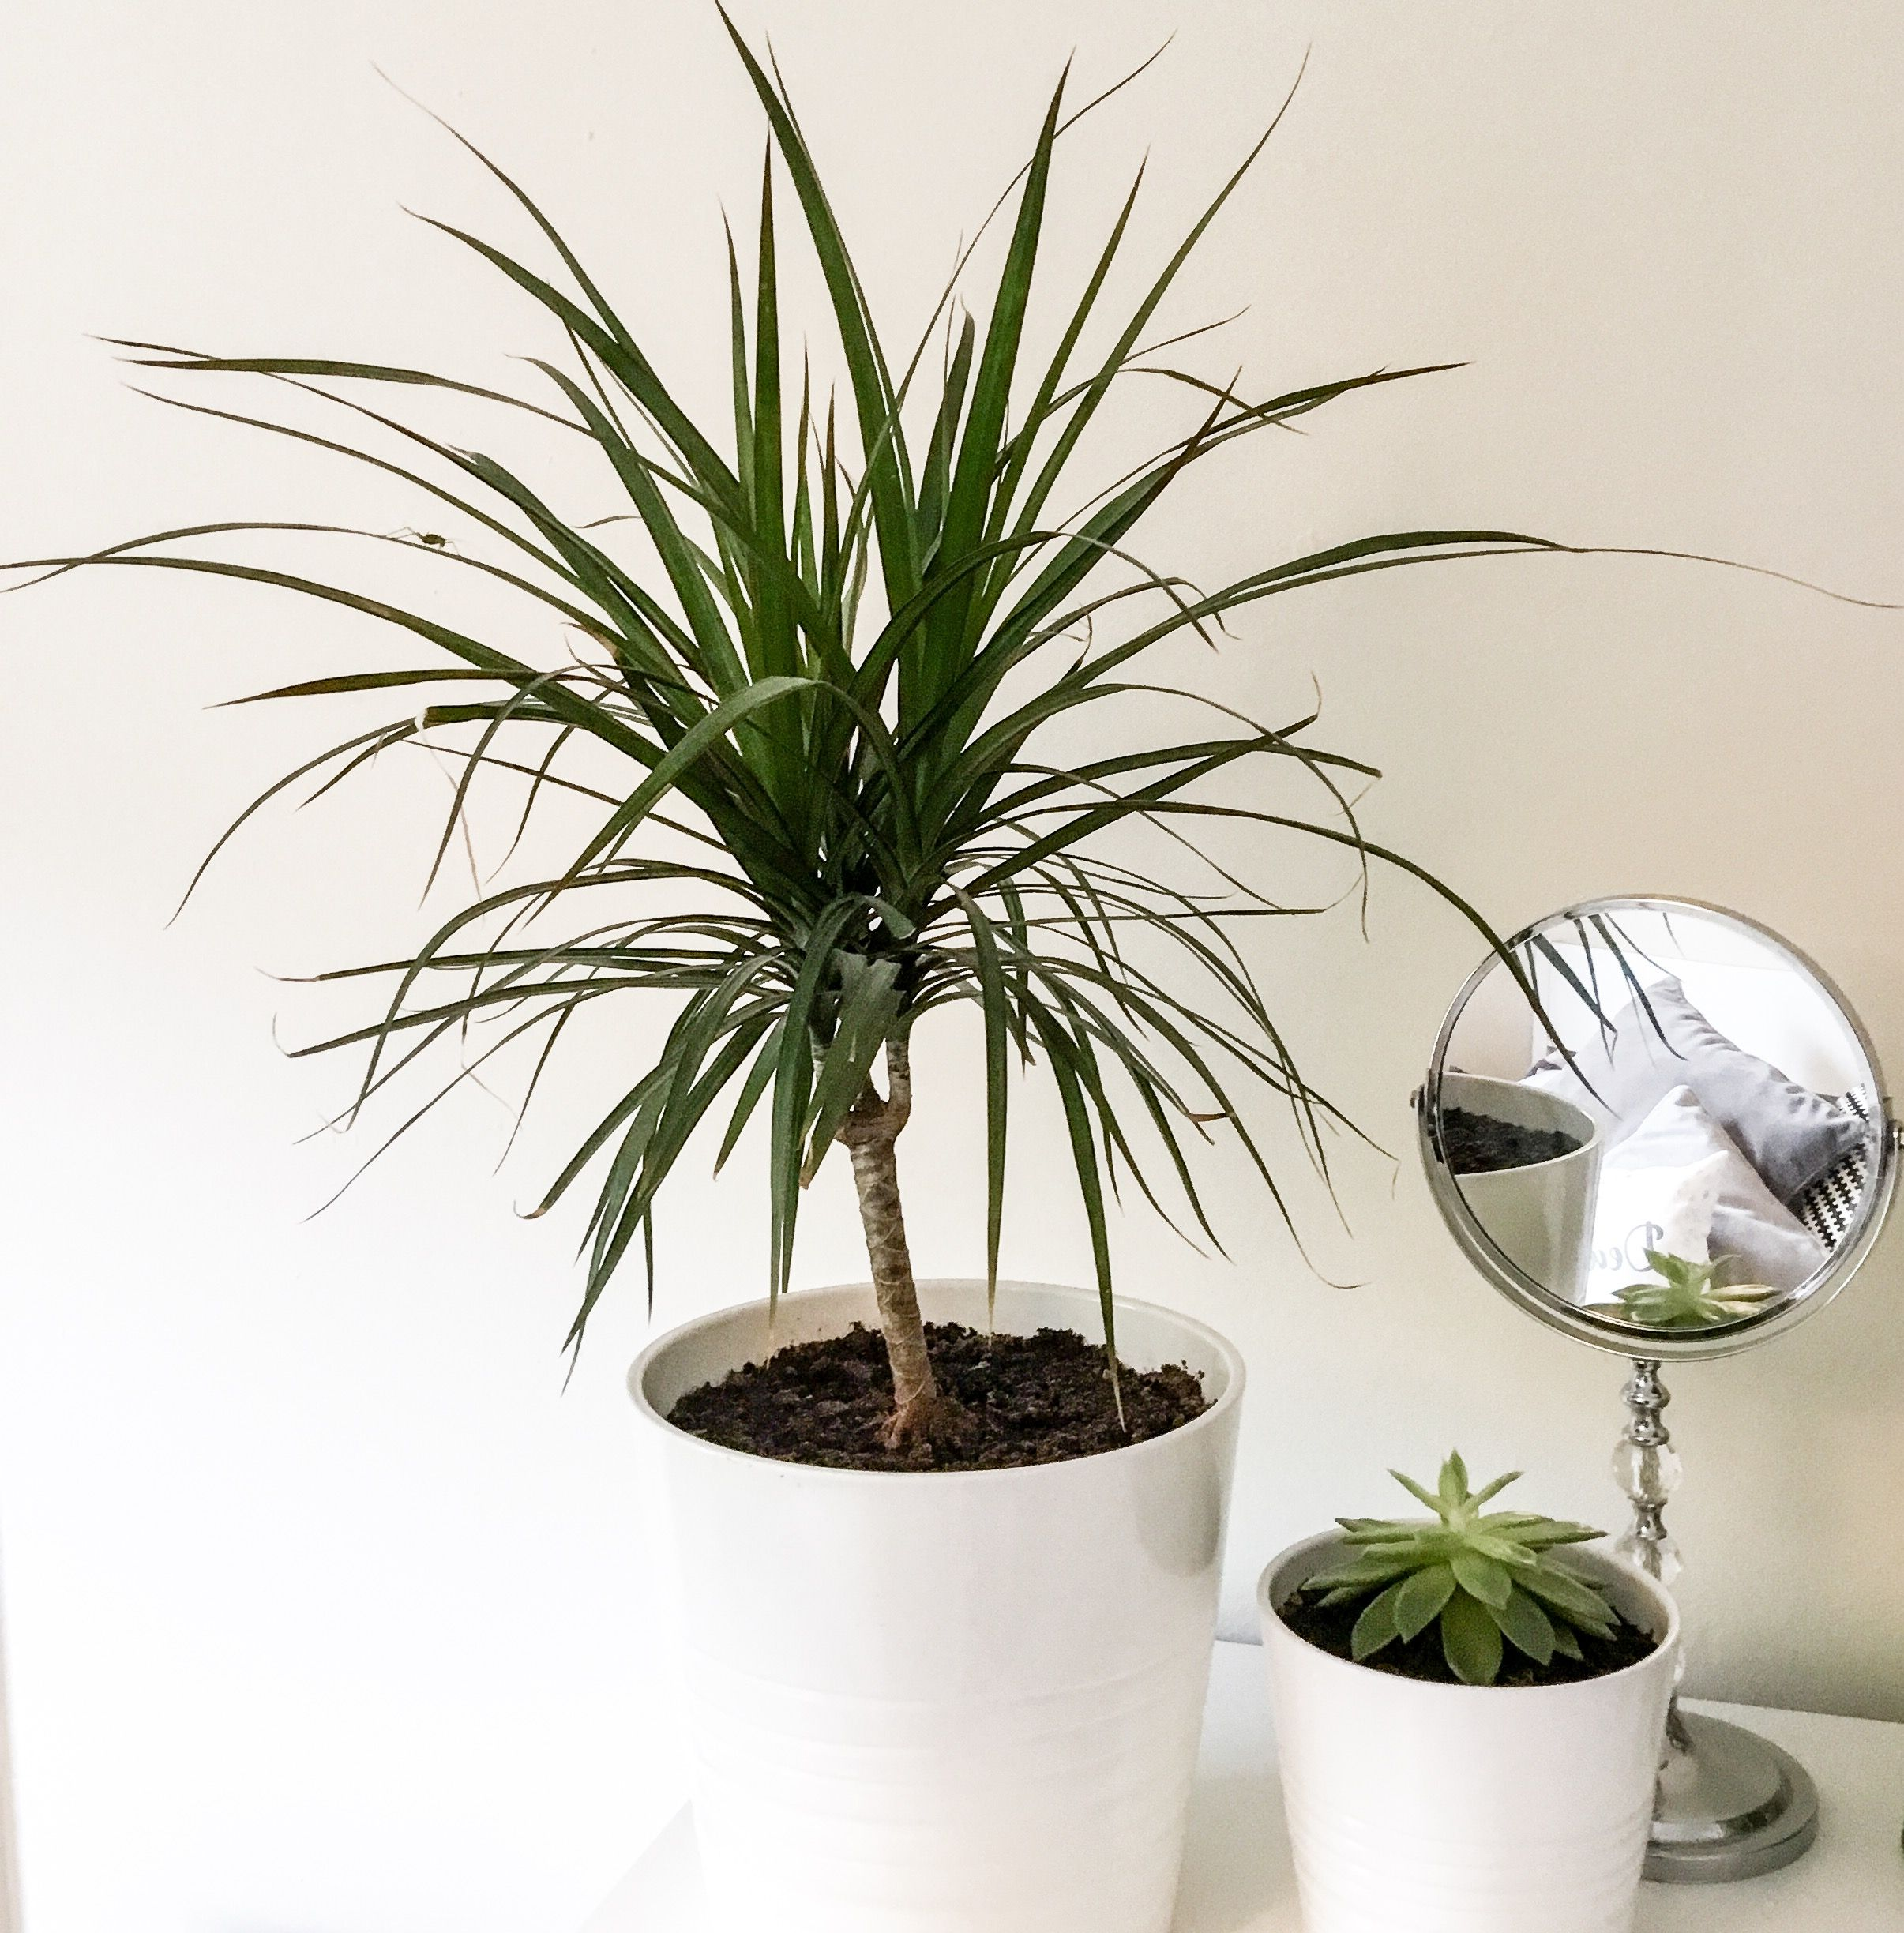 There are so many great benefits of having house plants